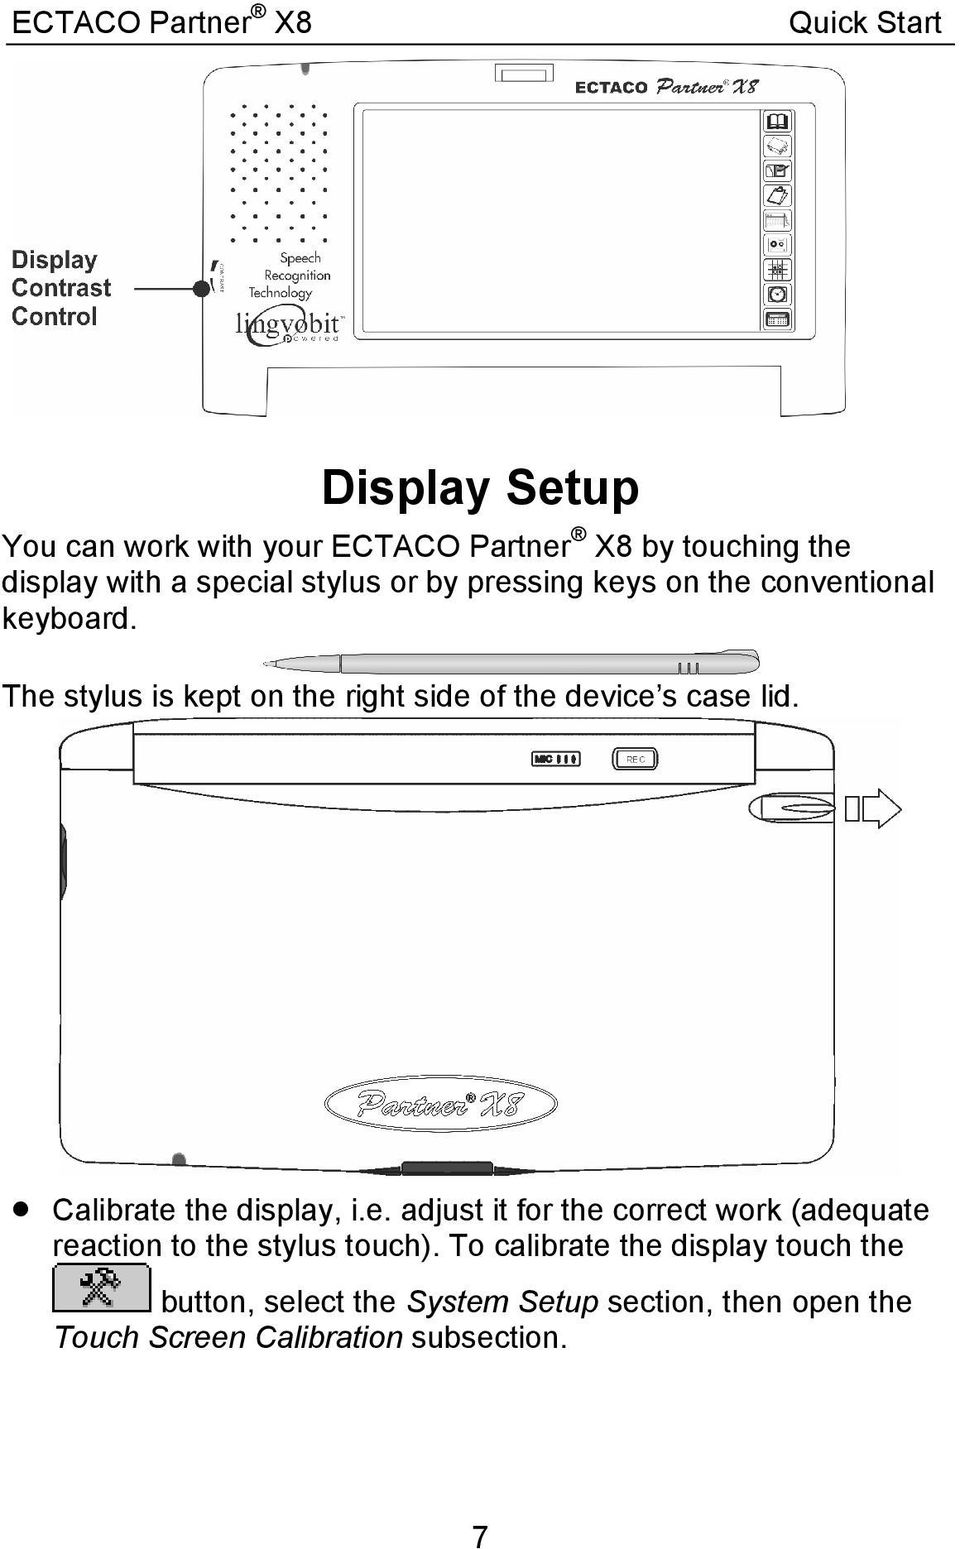 Calibrate the display, i.e. adjust it for the correct work (adequate reaction to the stylus touch).